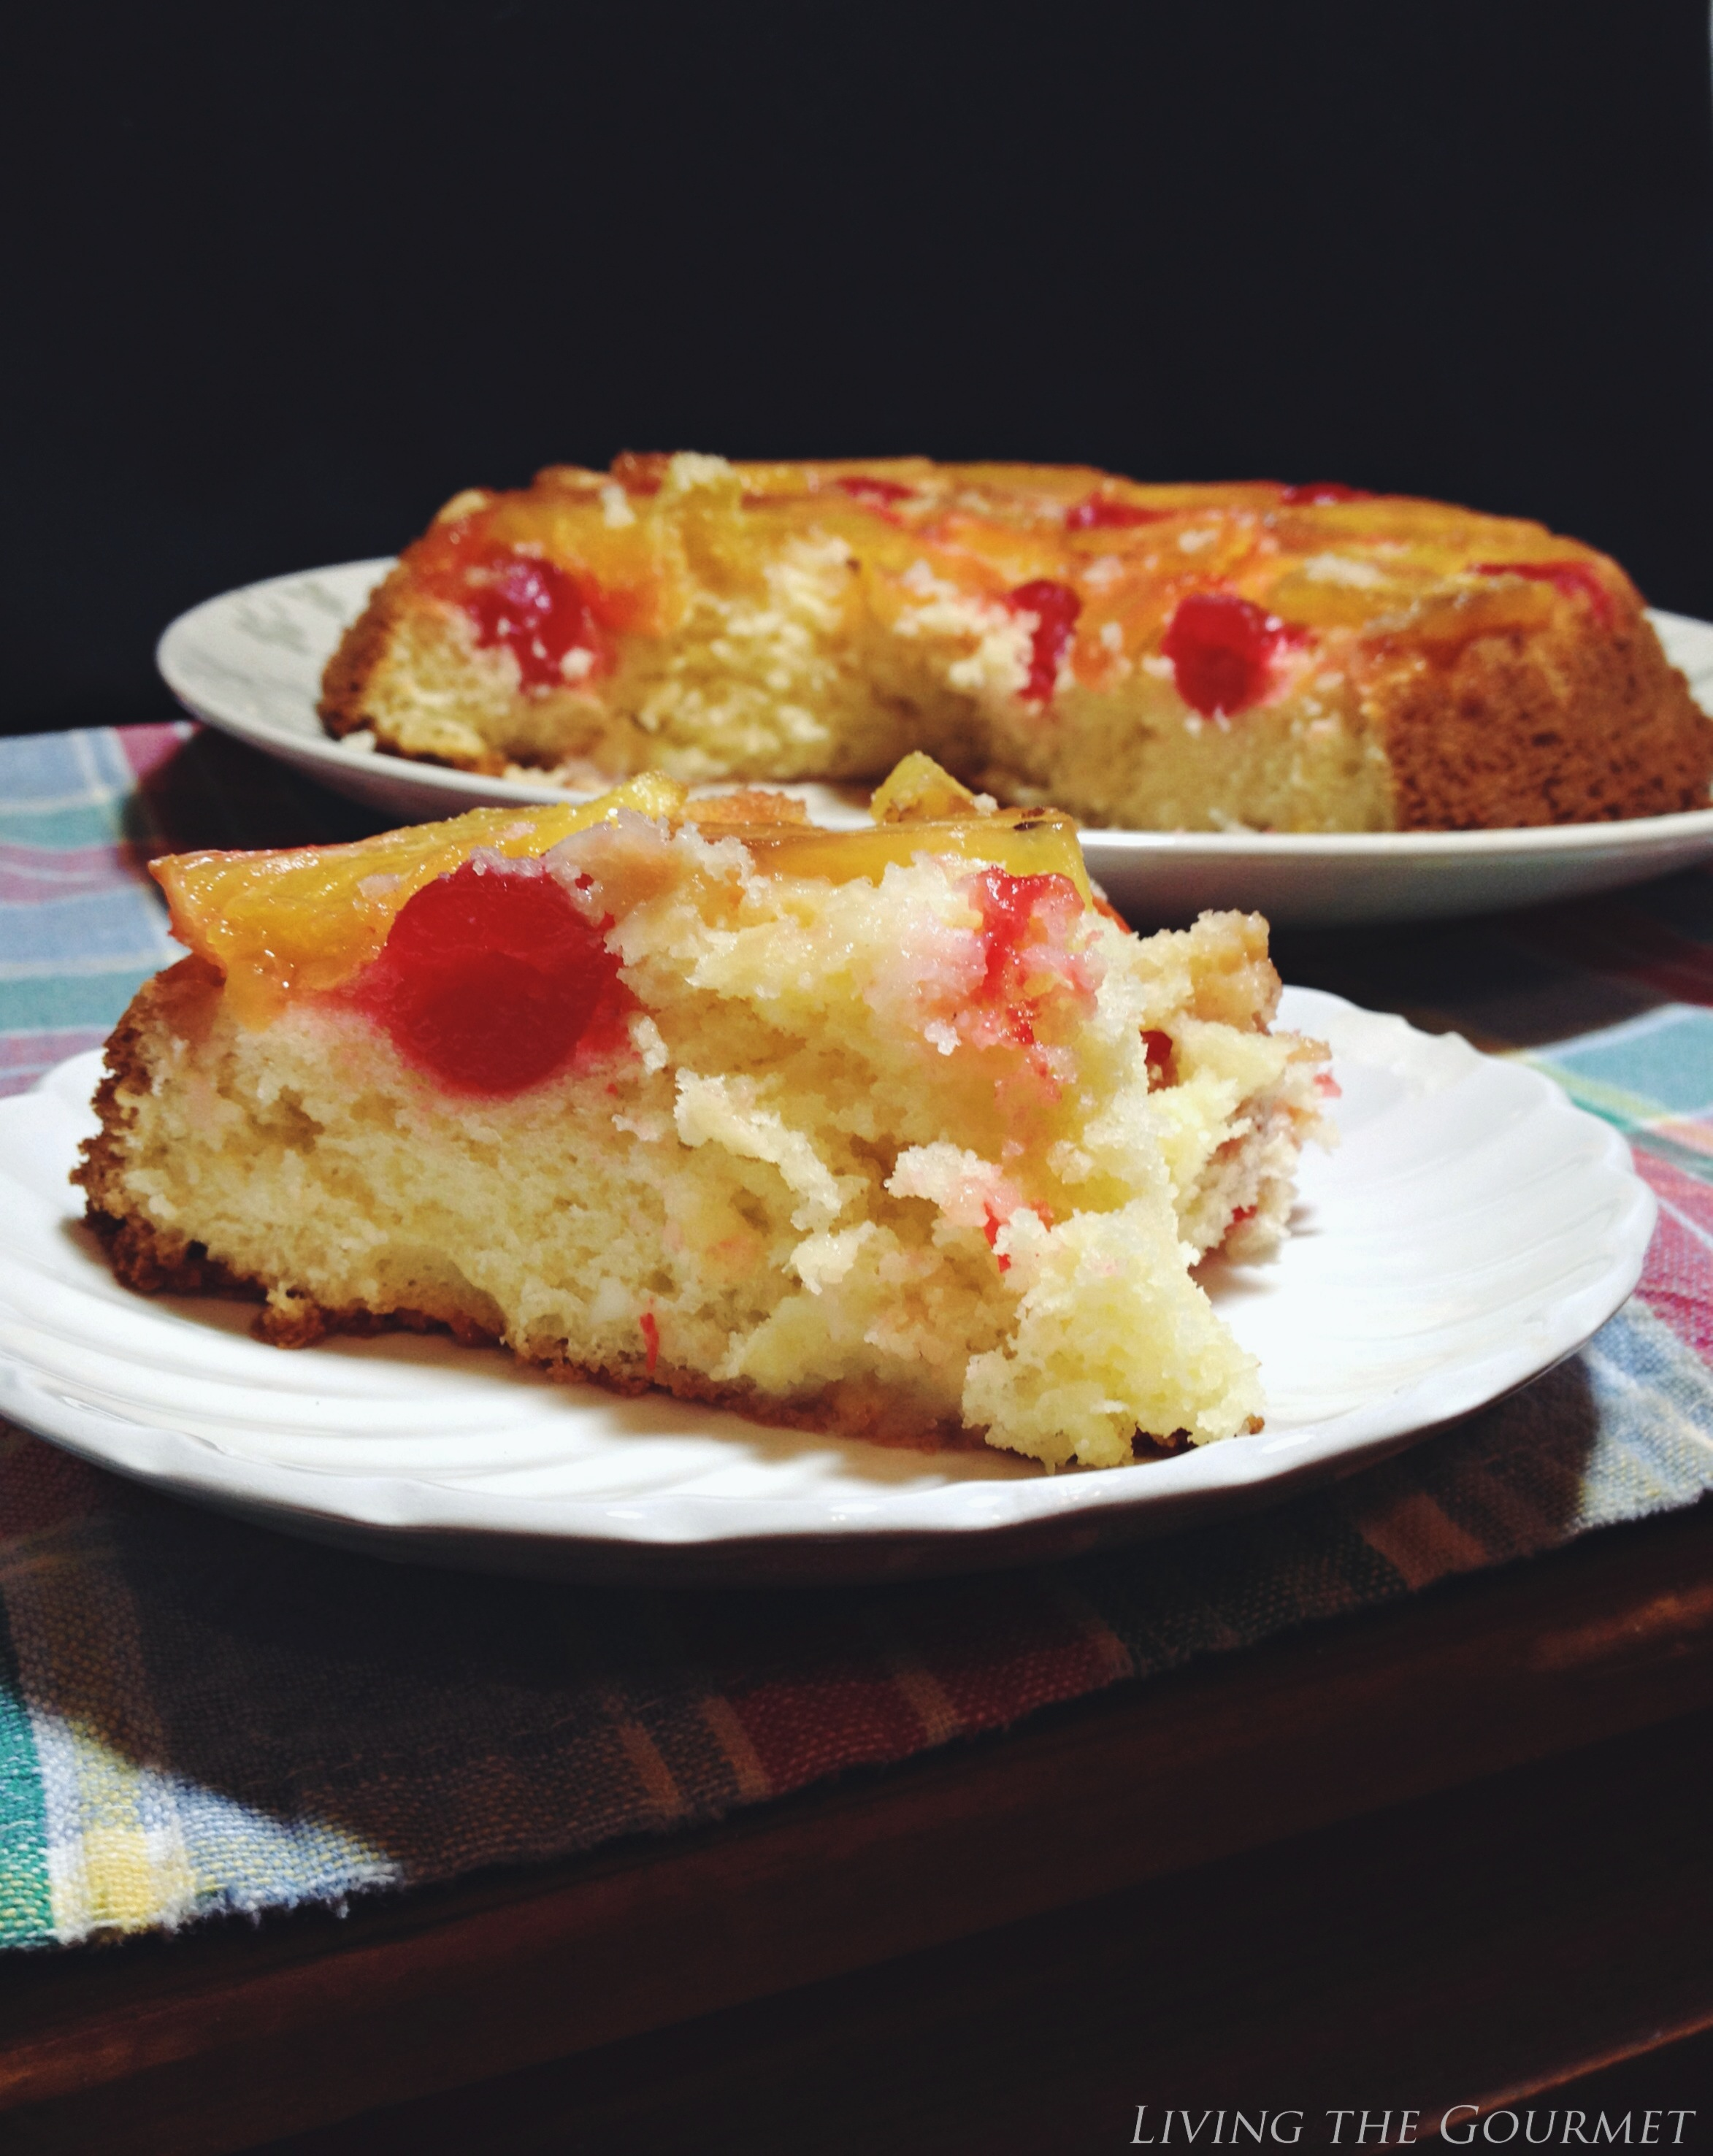 Living the Gourmet: Pineapple Upside-Down Cake